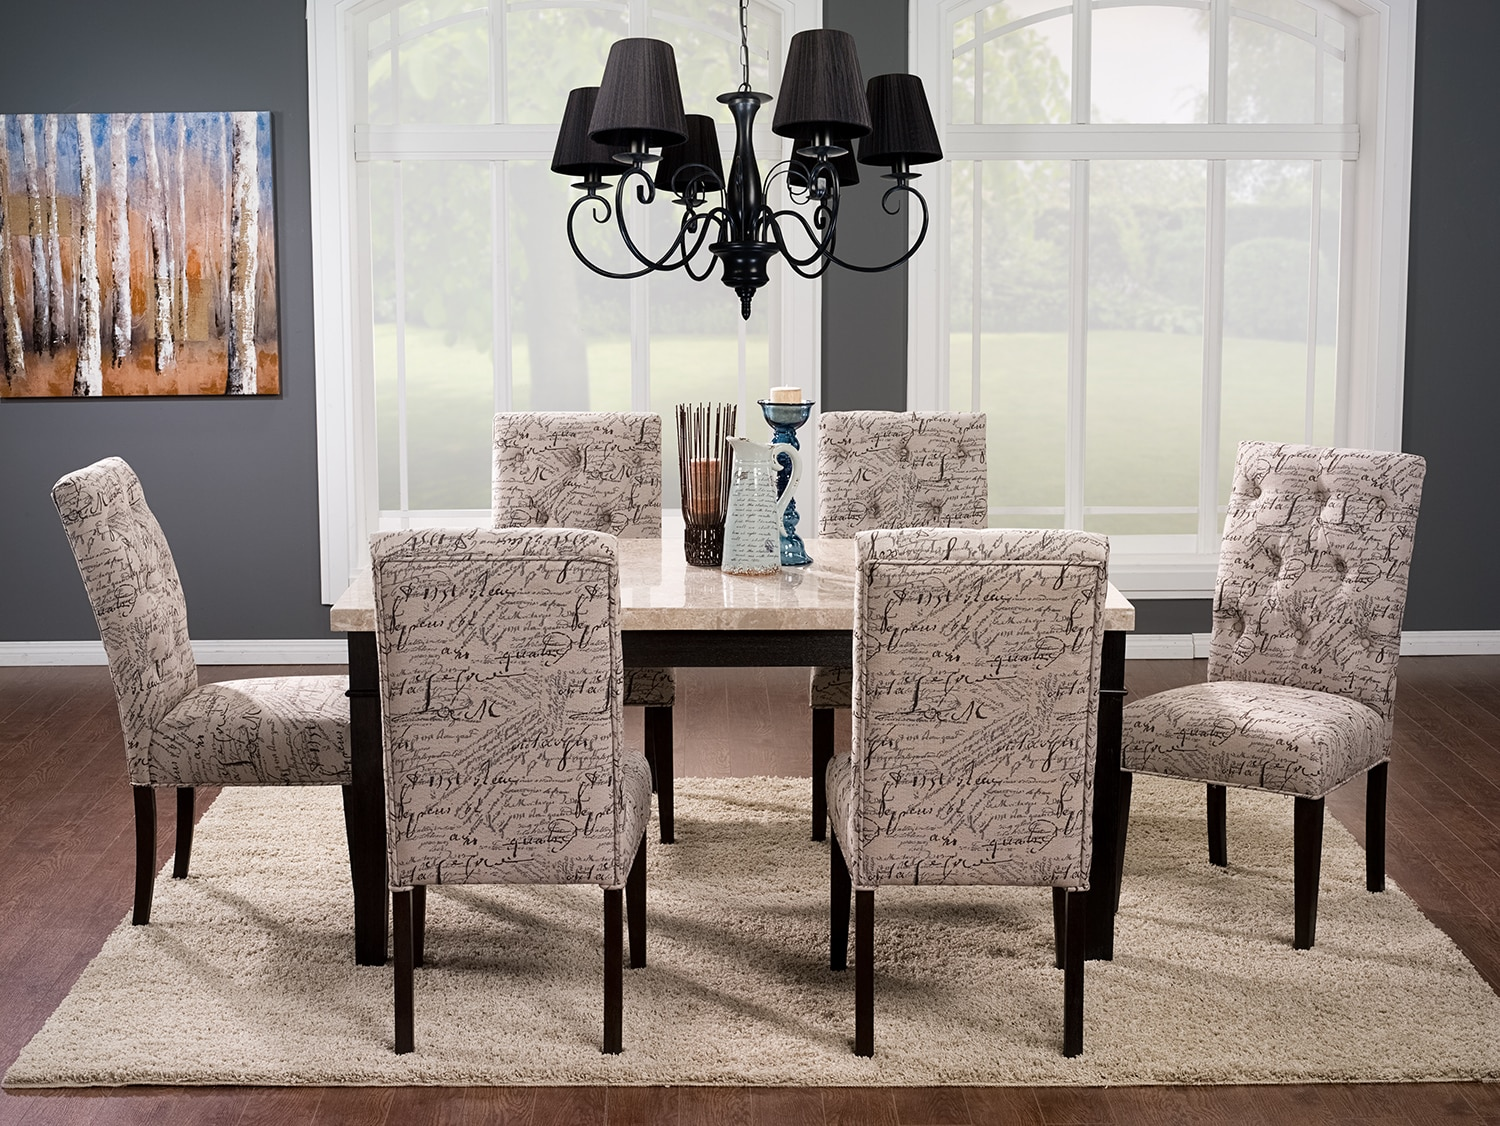 Dining Room Furniture - Aldo 7-Piece Dining Package with Brisbane Script Chairs